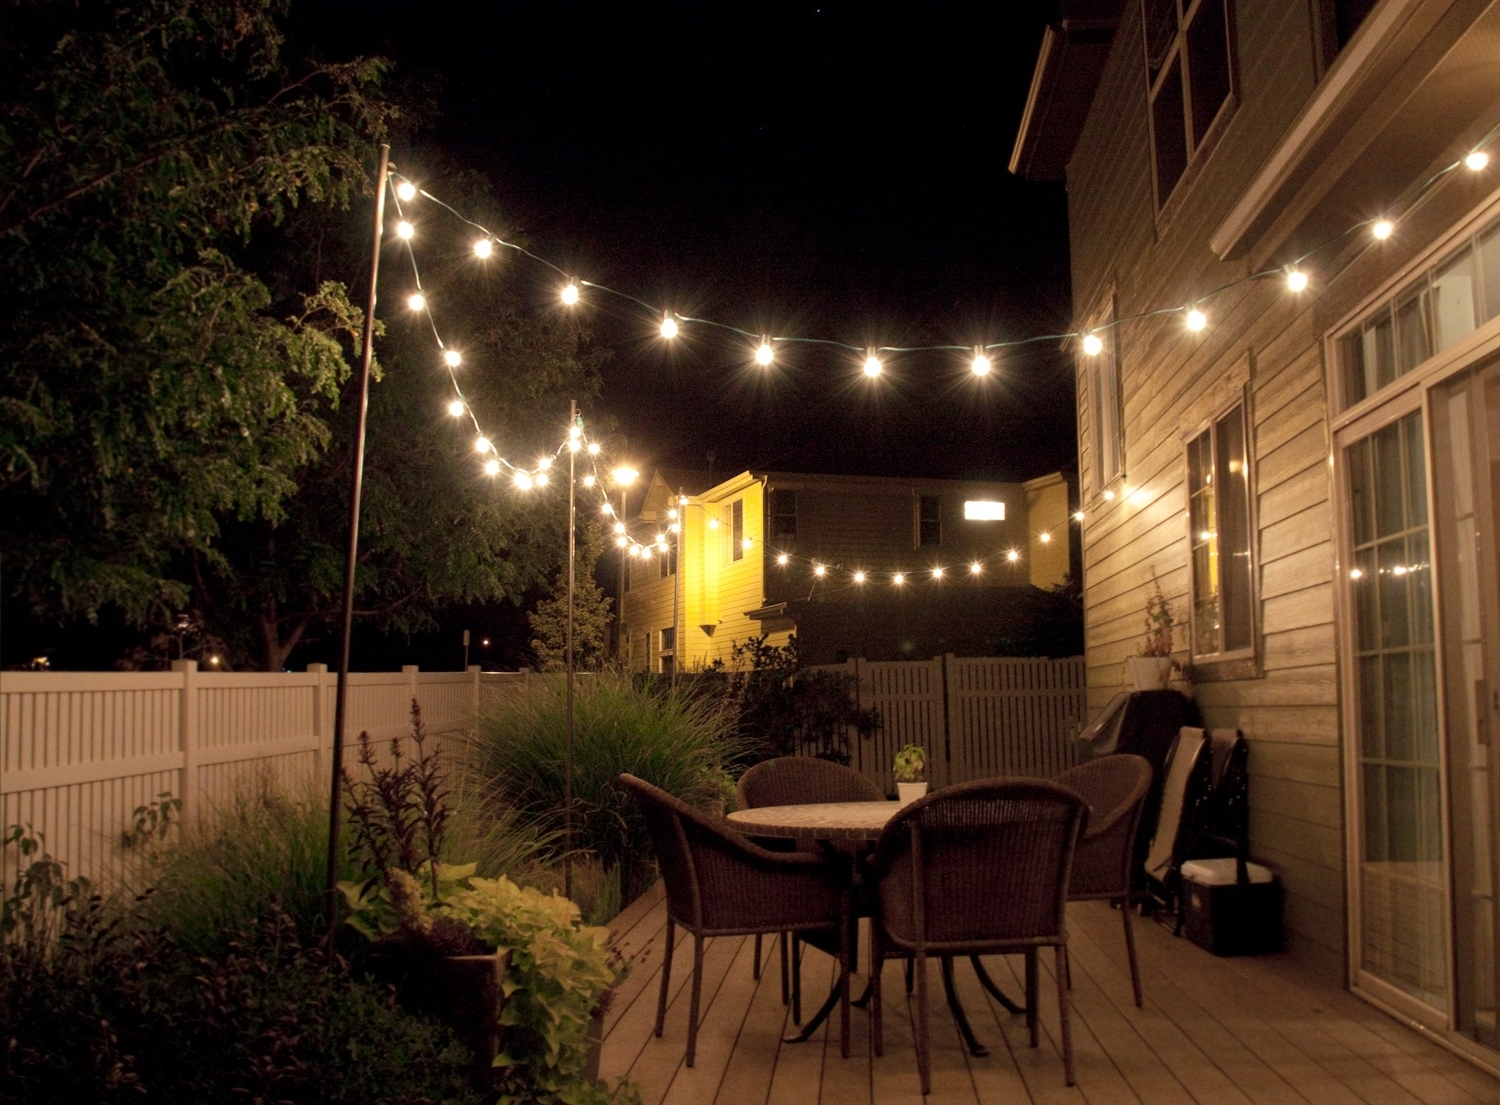 Outdoor Battery Operated Porch Lights — Bistrodre Porch And Intended For Best And Newest Battery Operated Outdoor Lighting (View 11 of 20)